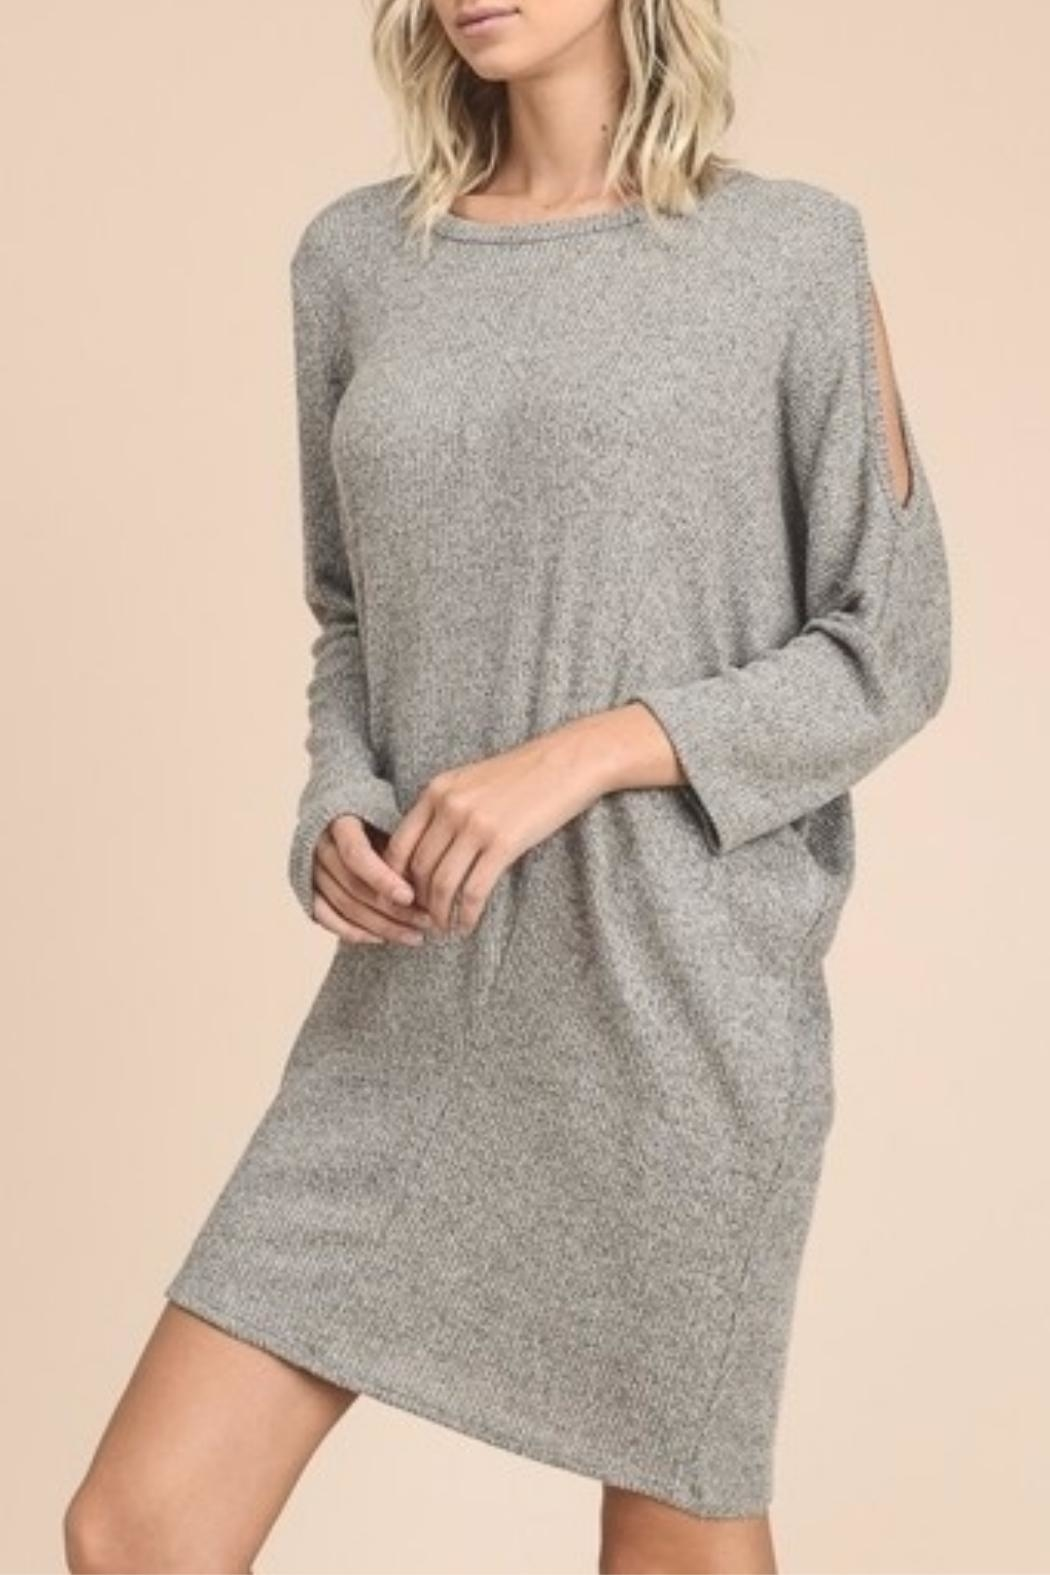 vanilla bay Sweater Midi Dress - Main Image